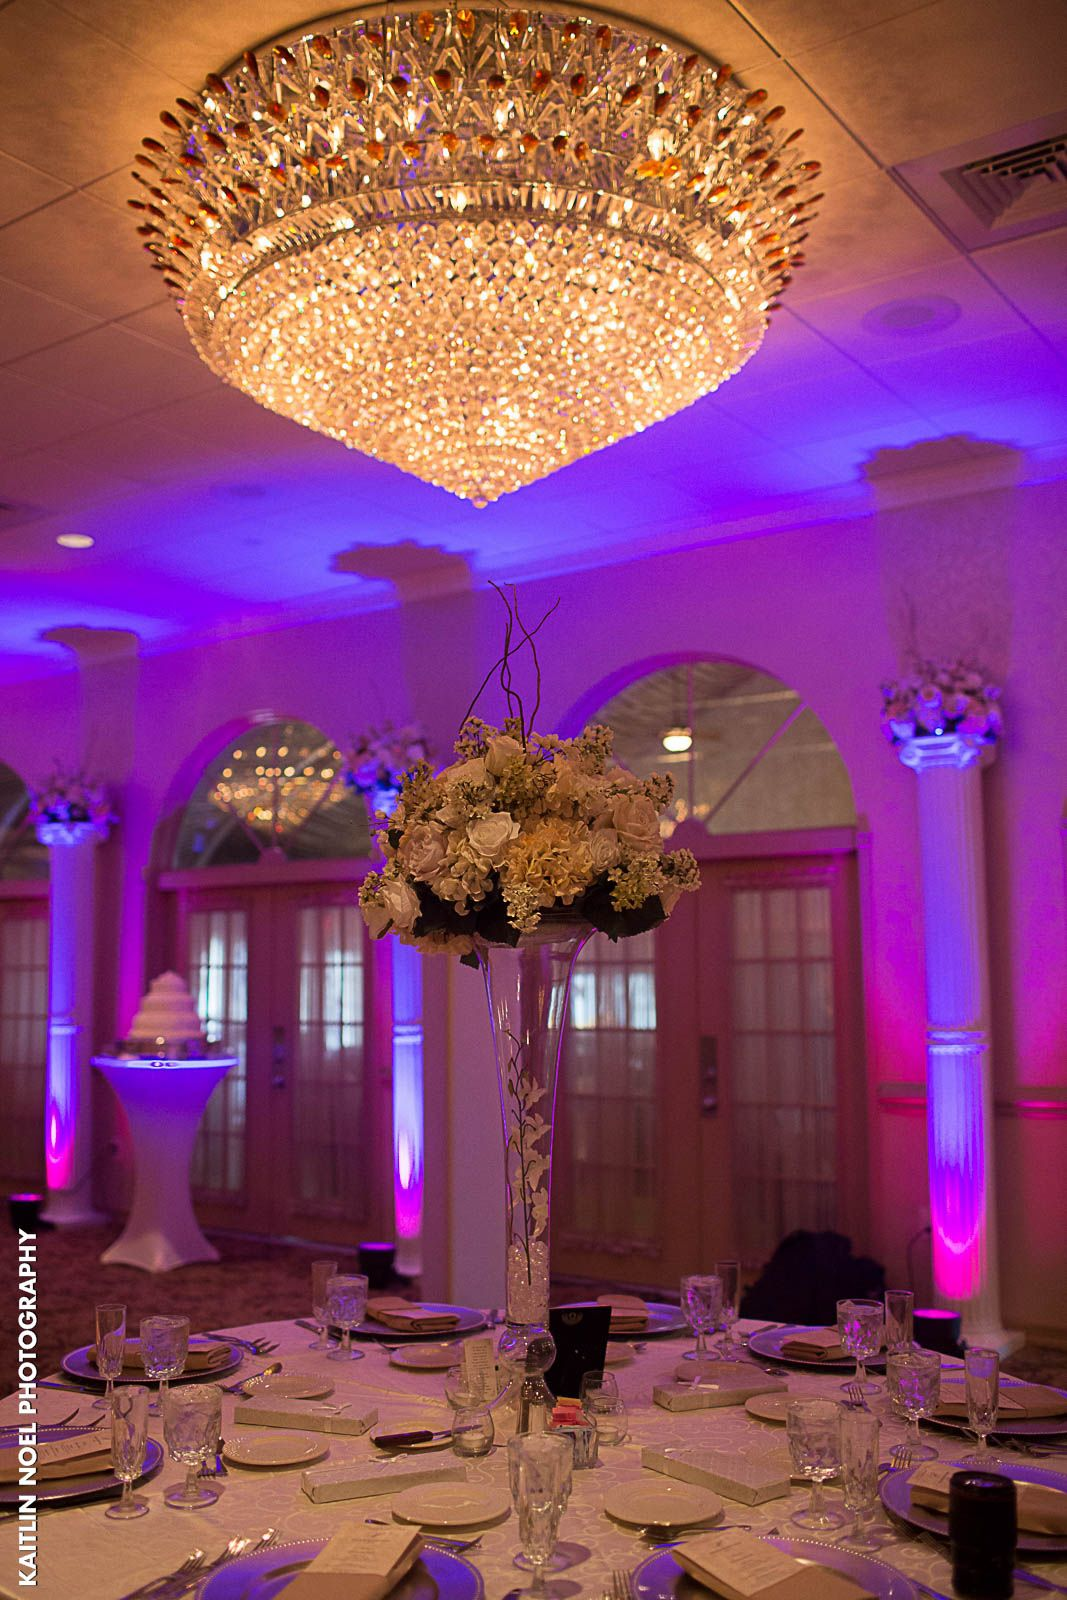 Elegant wedding ceremony at naninas in the park in belleville nj elegant wedding ceremony at naninas in the park in belleville nj wedding romance pinterest park banquet and quinceanera ideas arubaitofo Gallery